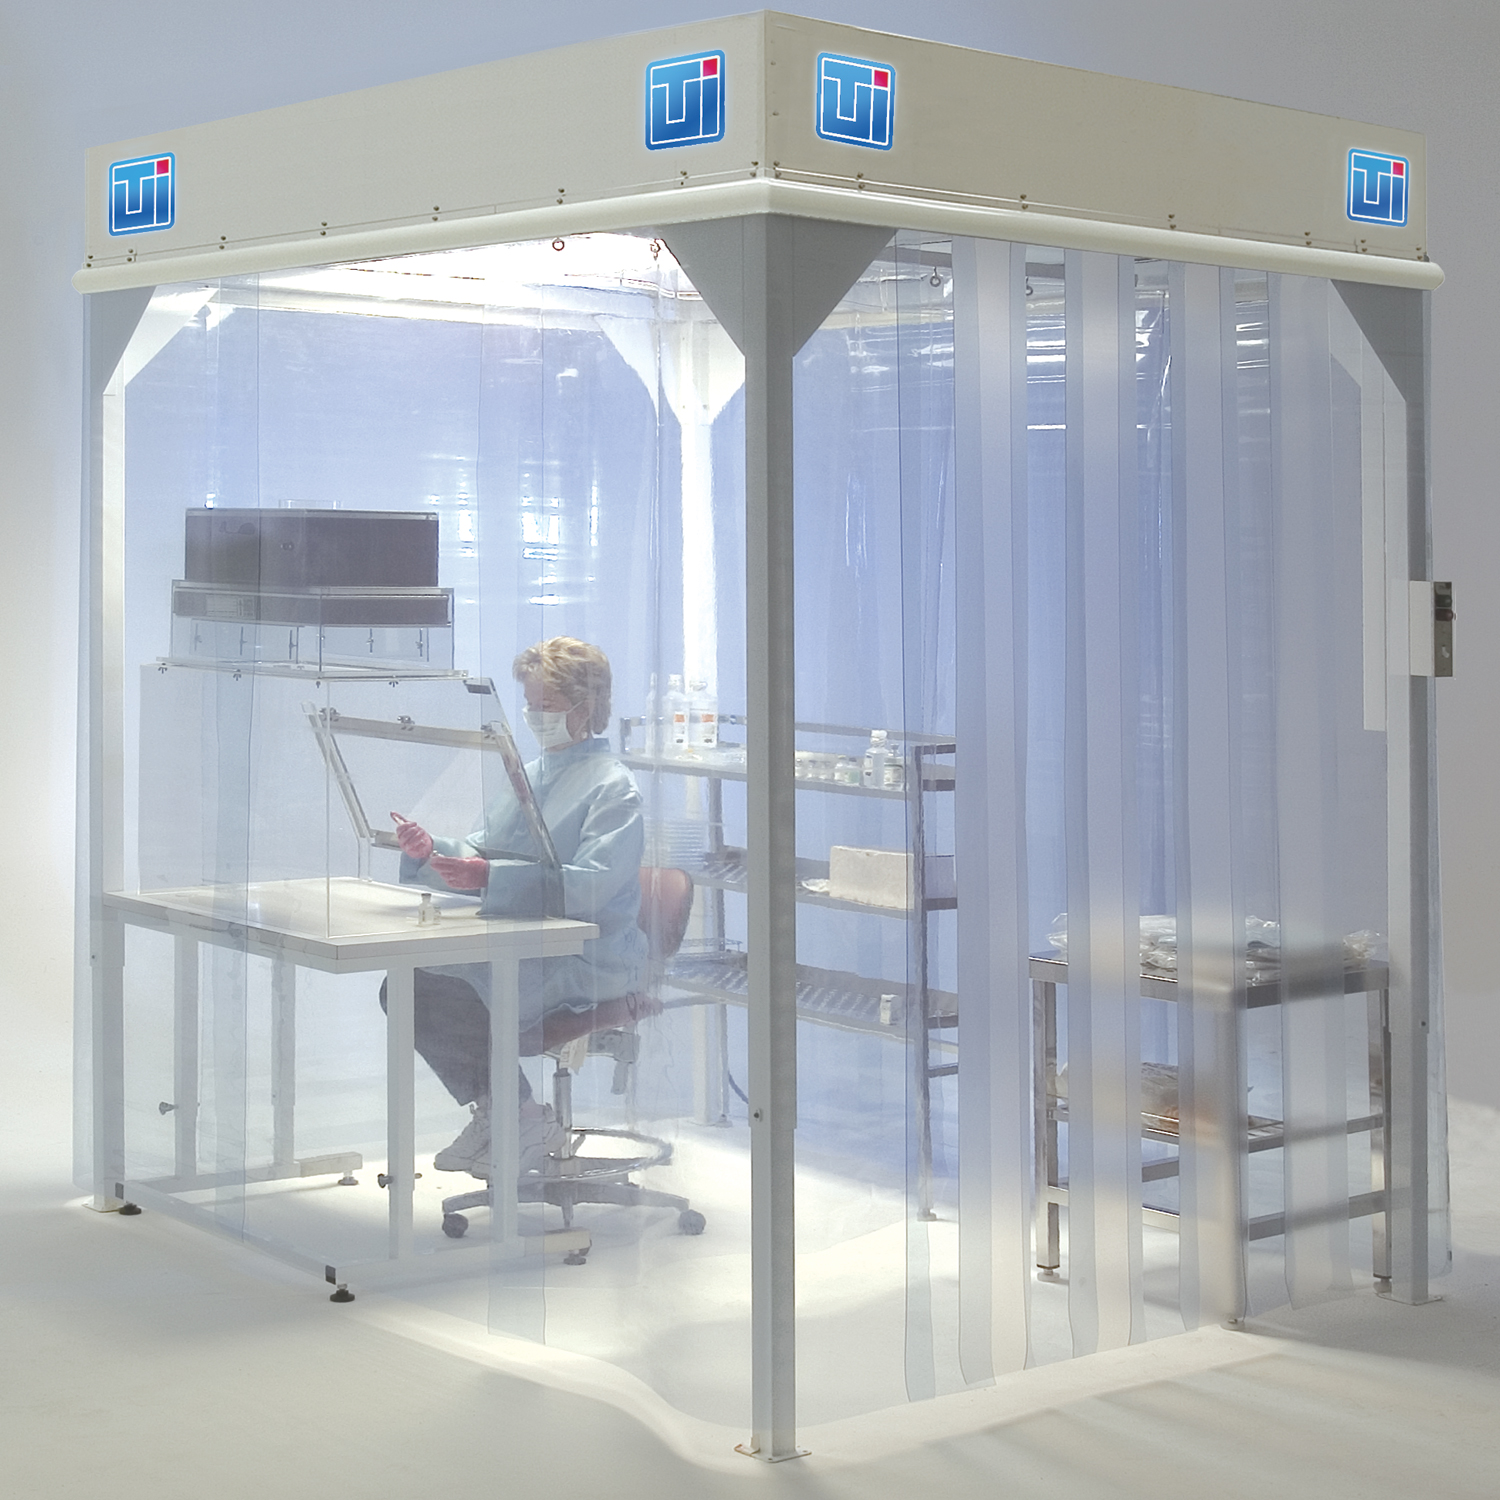 Softwall Modular Cleanroom with Vinyl Curtains